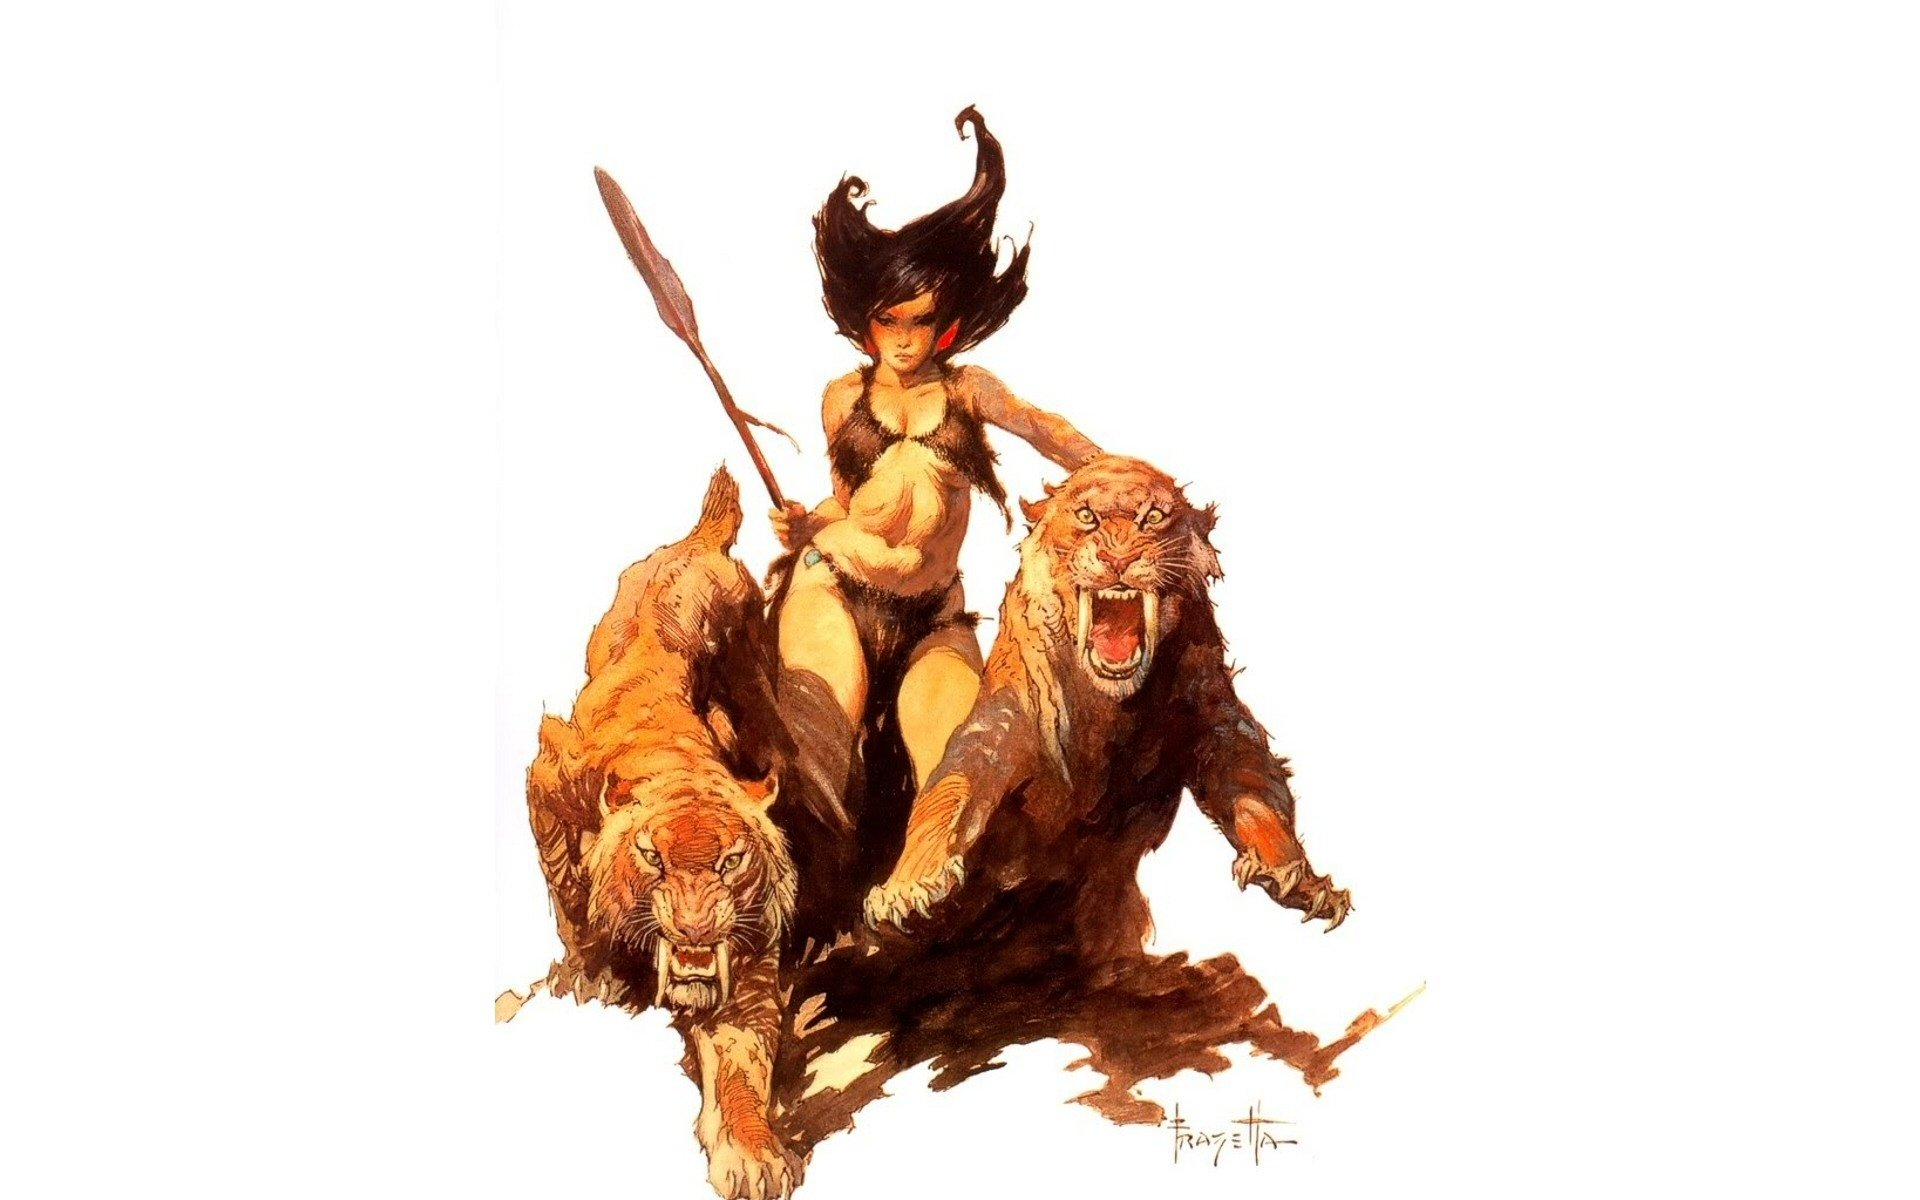 Frank Frazetta Wallpapers Frank Frazetta Wallpaper 1920x1200